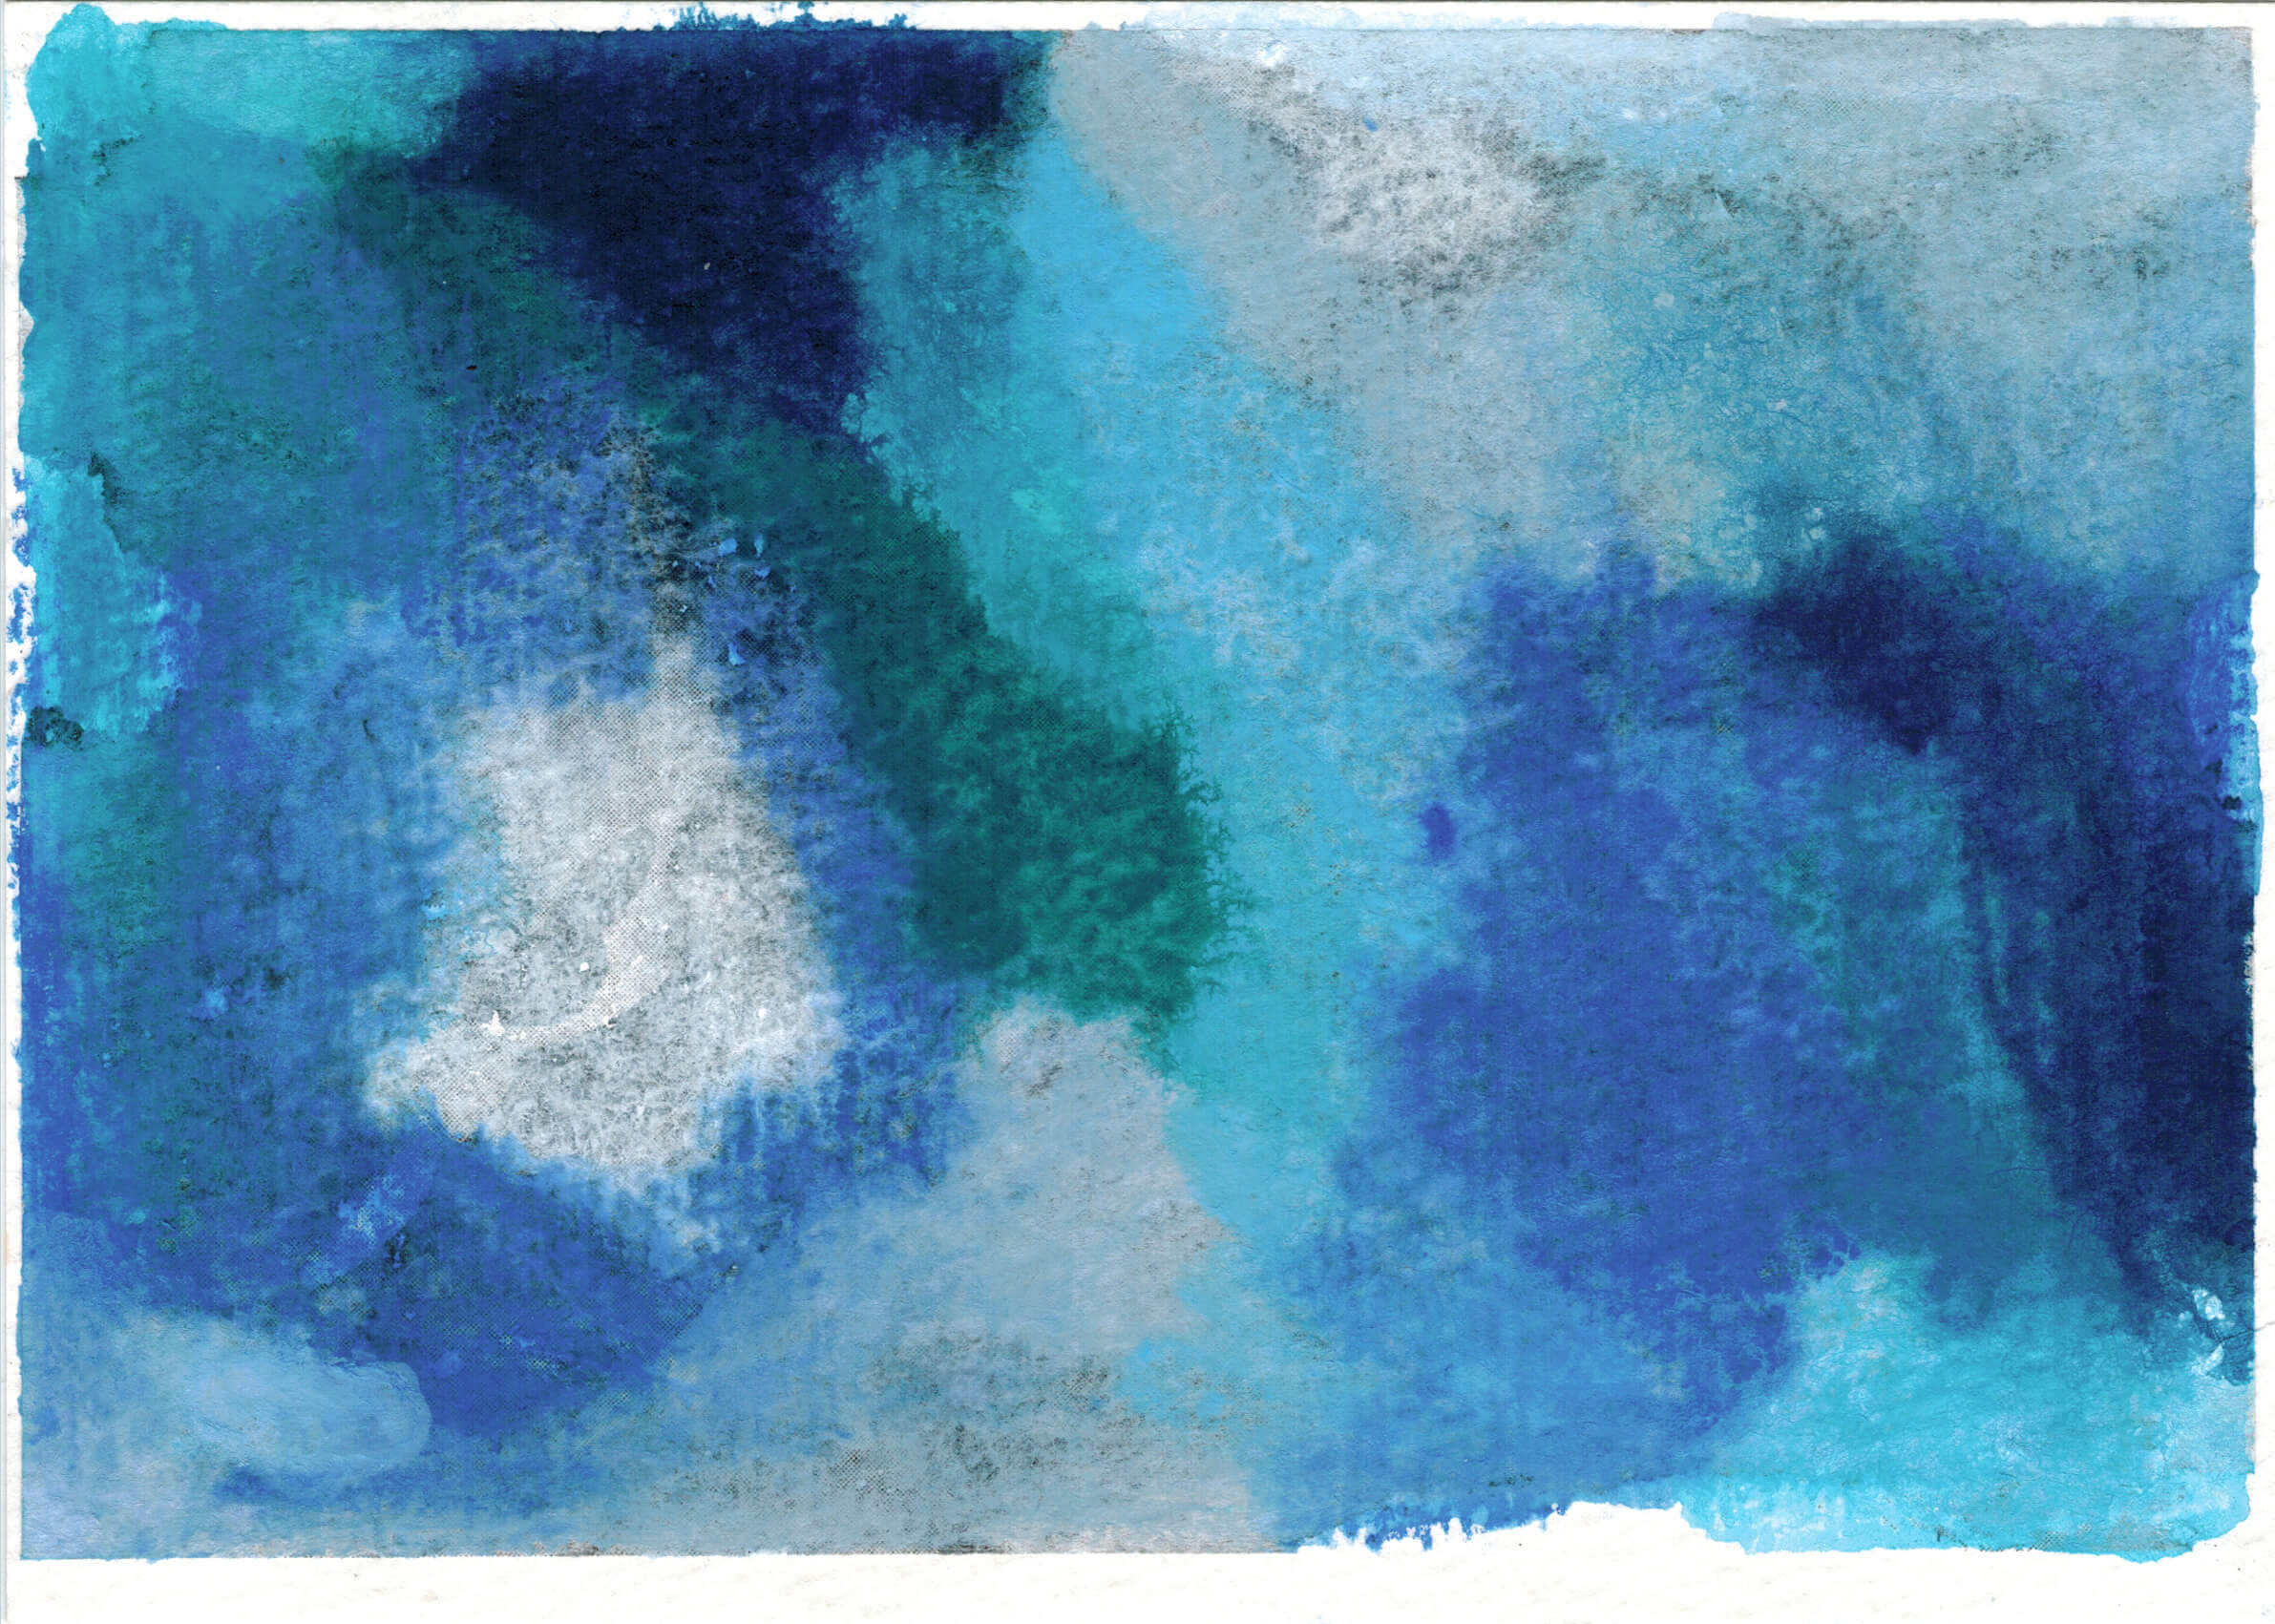 An abstract painting with large swaths of light and dark blues, white and gray. The texture of the paper shows through.